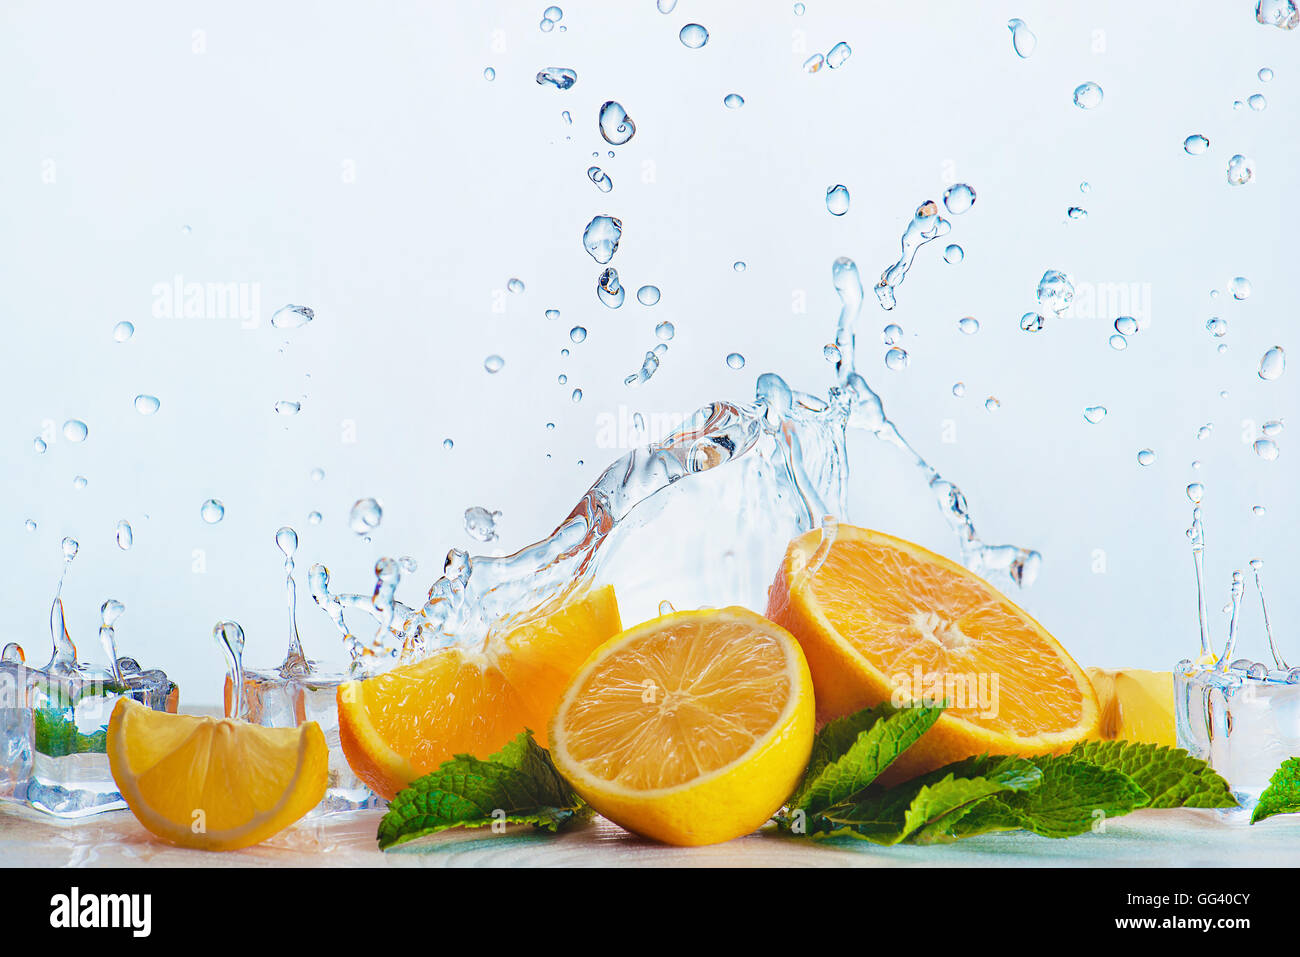 Zero gravity oranges - Stock Image